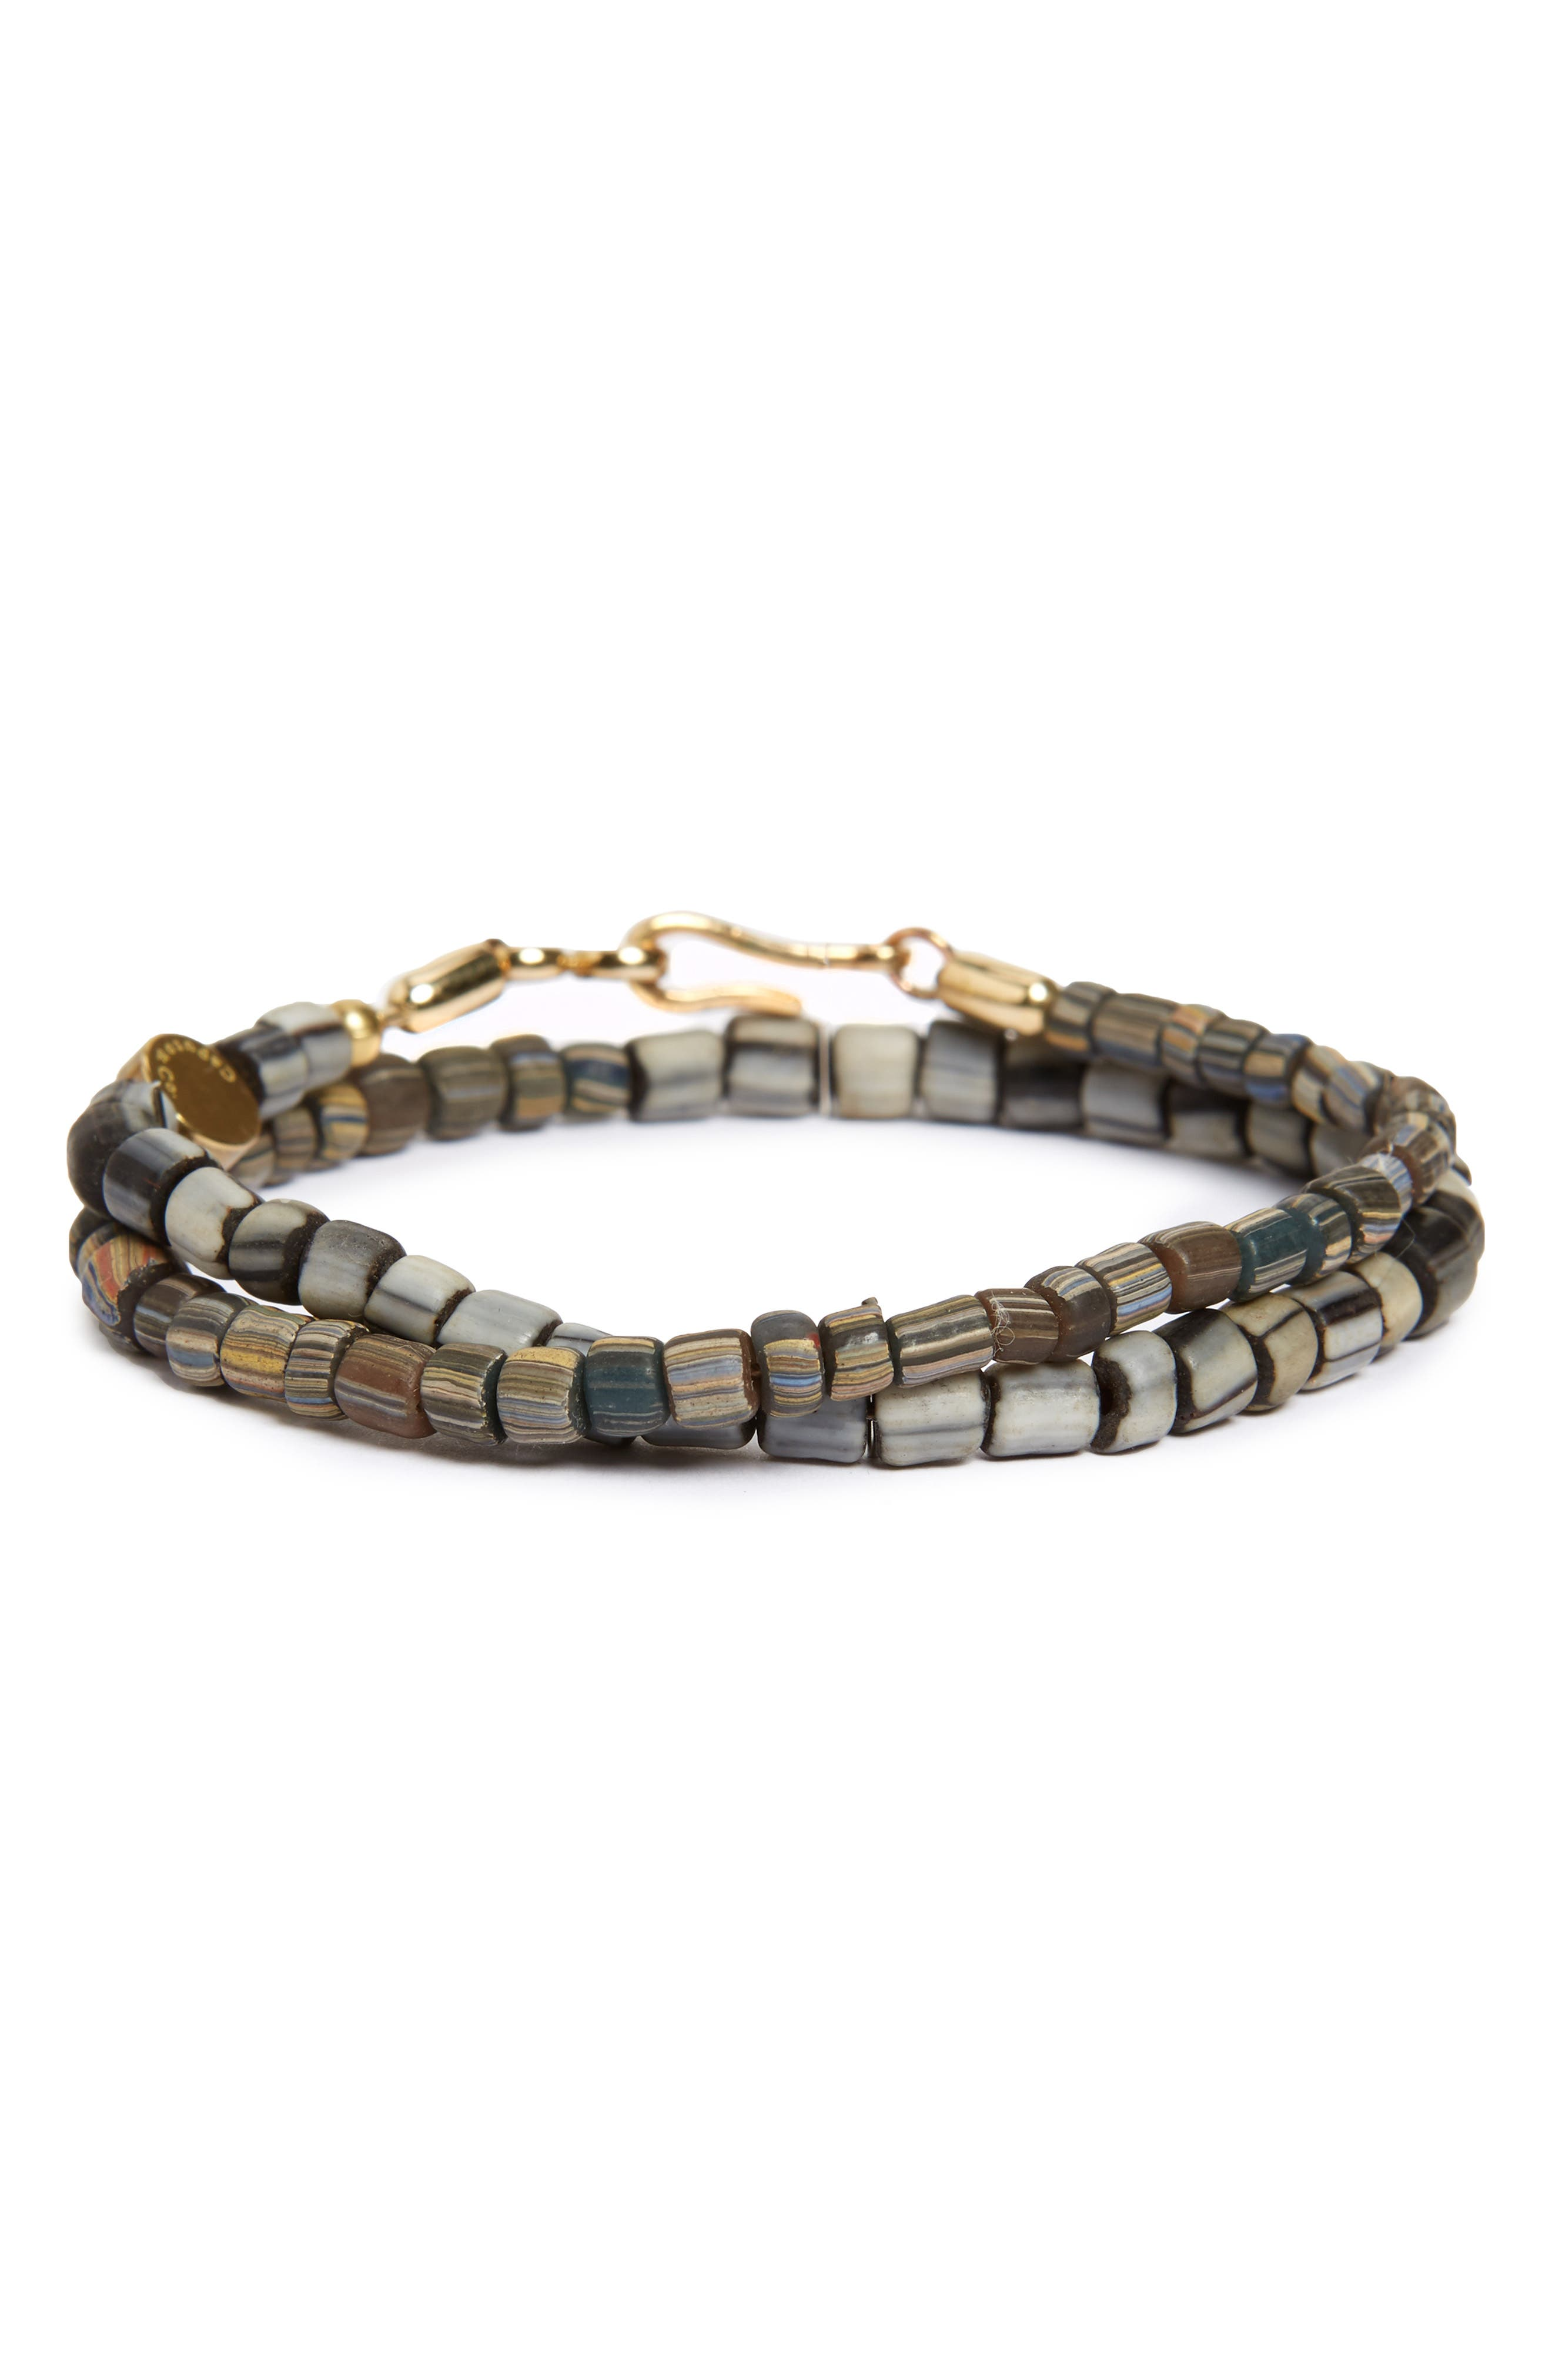 Glass Bead Wrap Bracelet,                             Main thumbnail 1, color,                             GREY/ BROWN COMBO